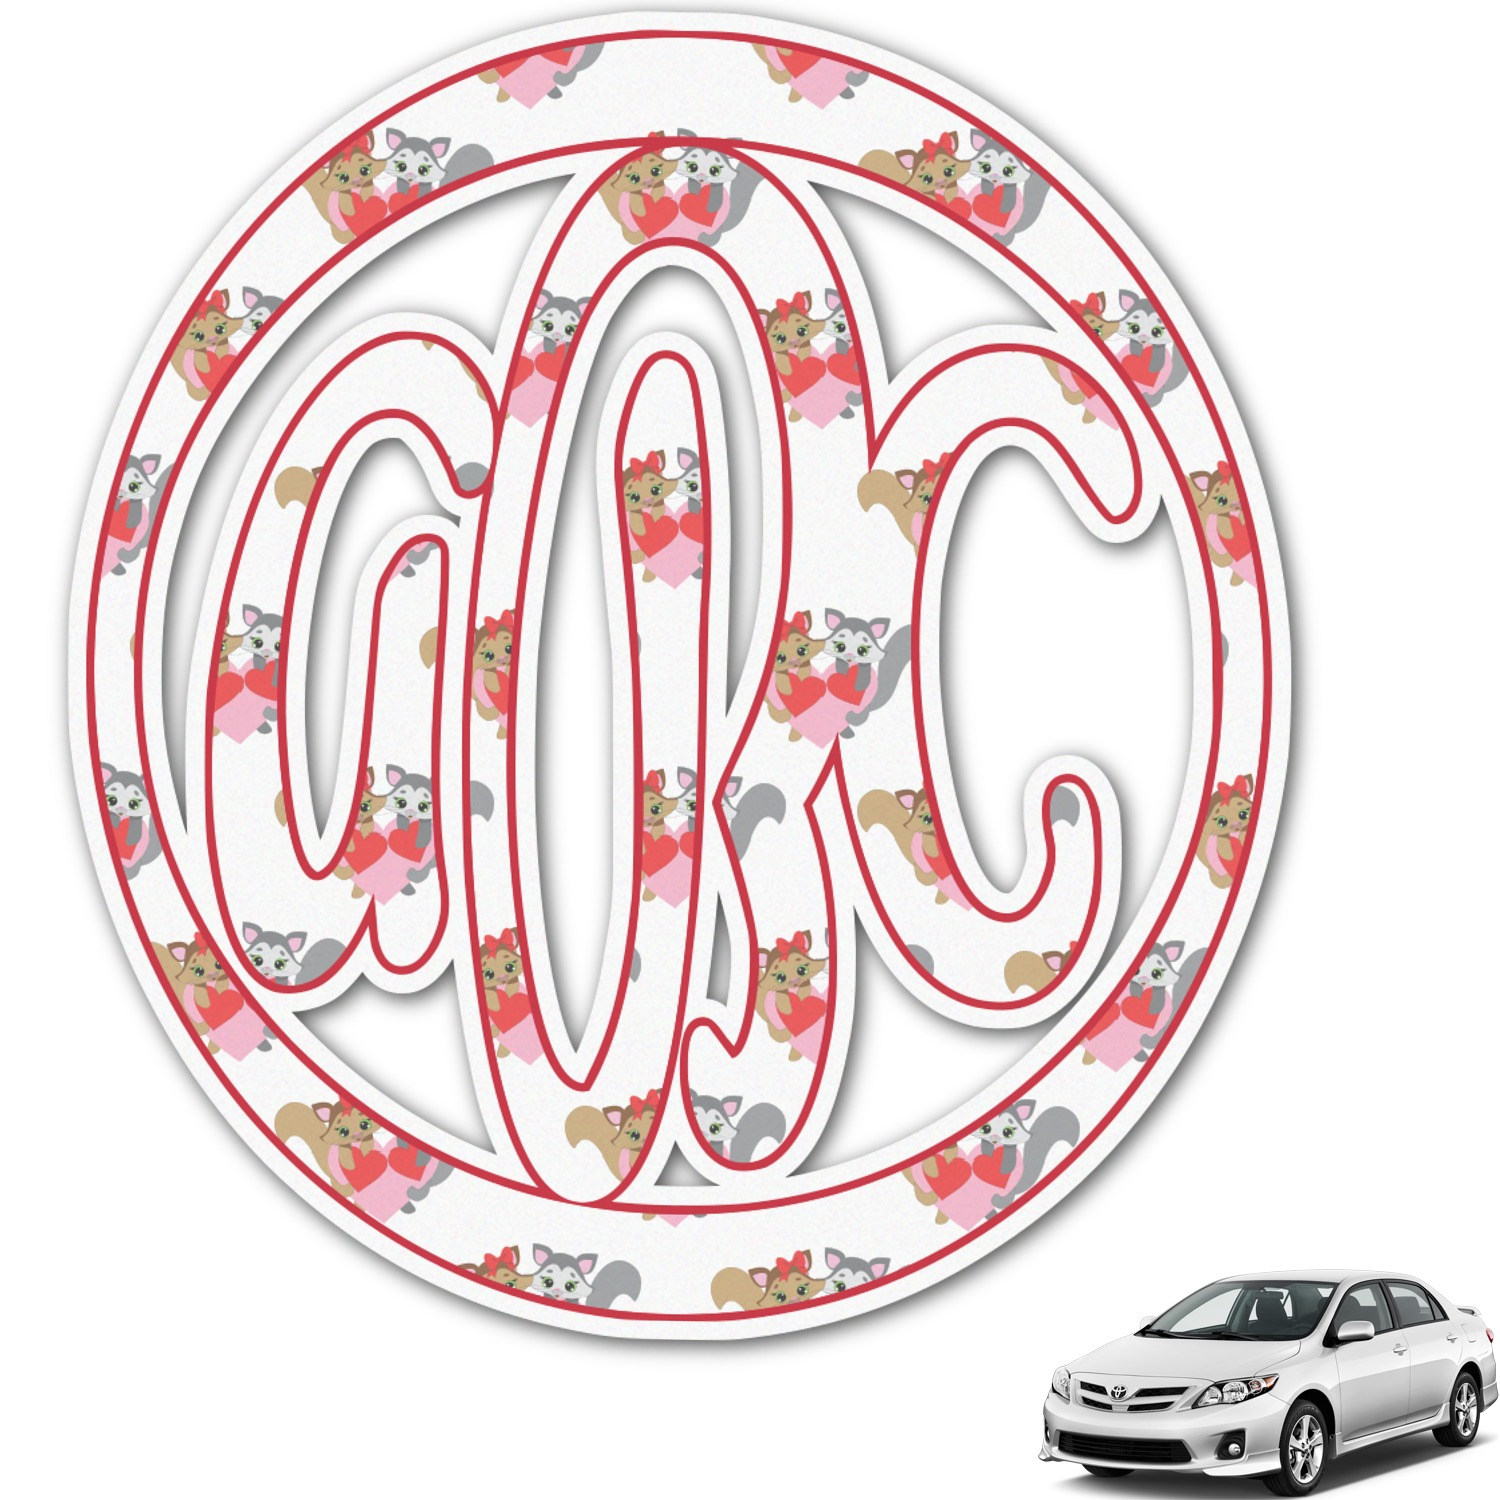 Kitchen Design Names Cute Squirrel Couple Monogram Car Decal Personalized